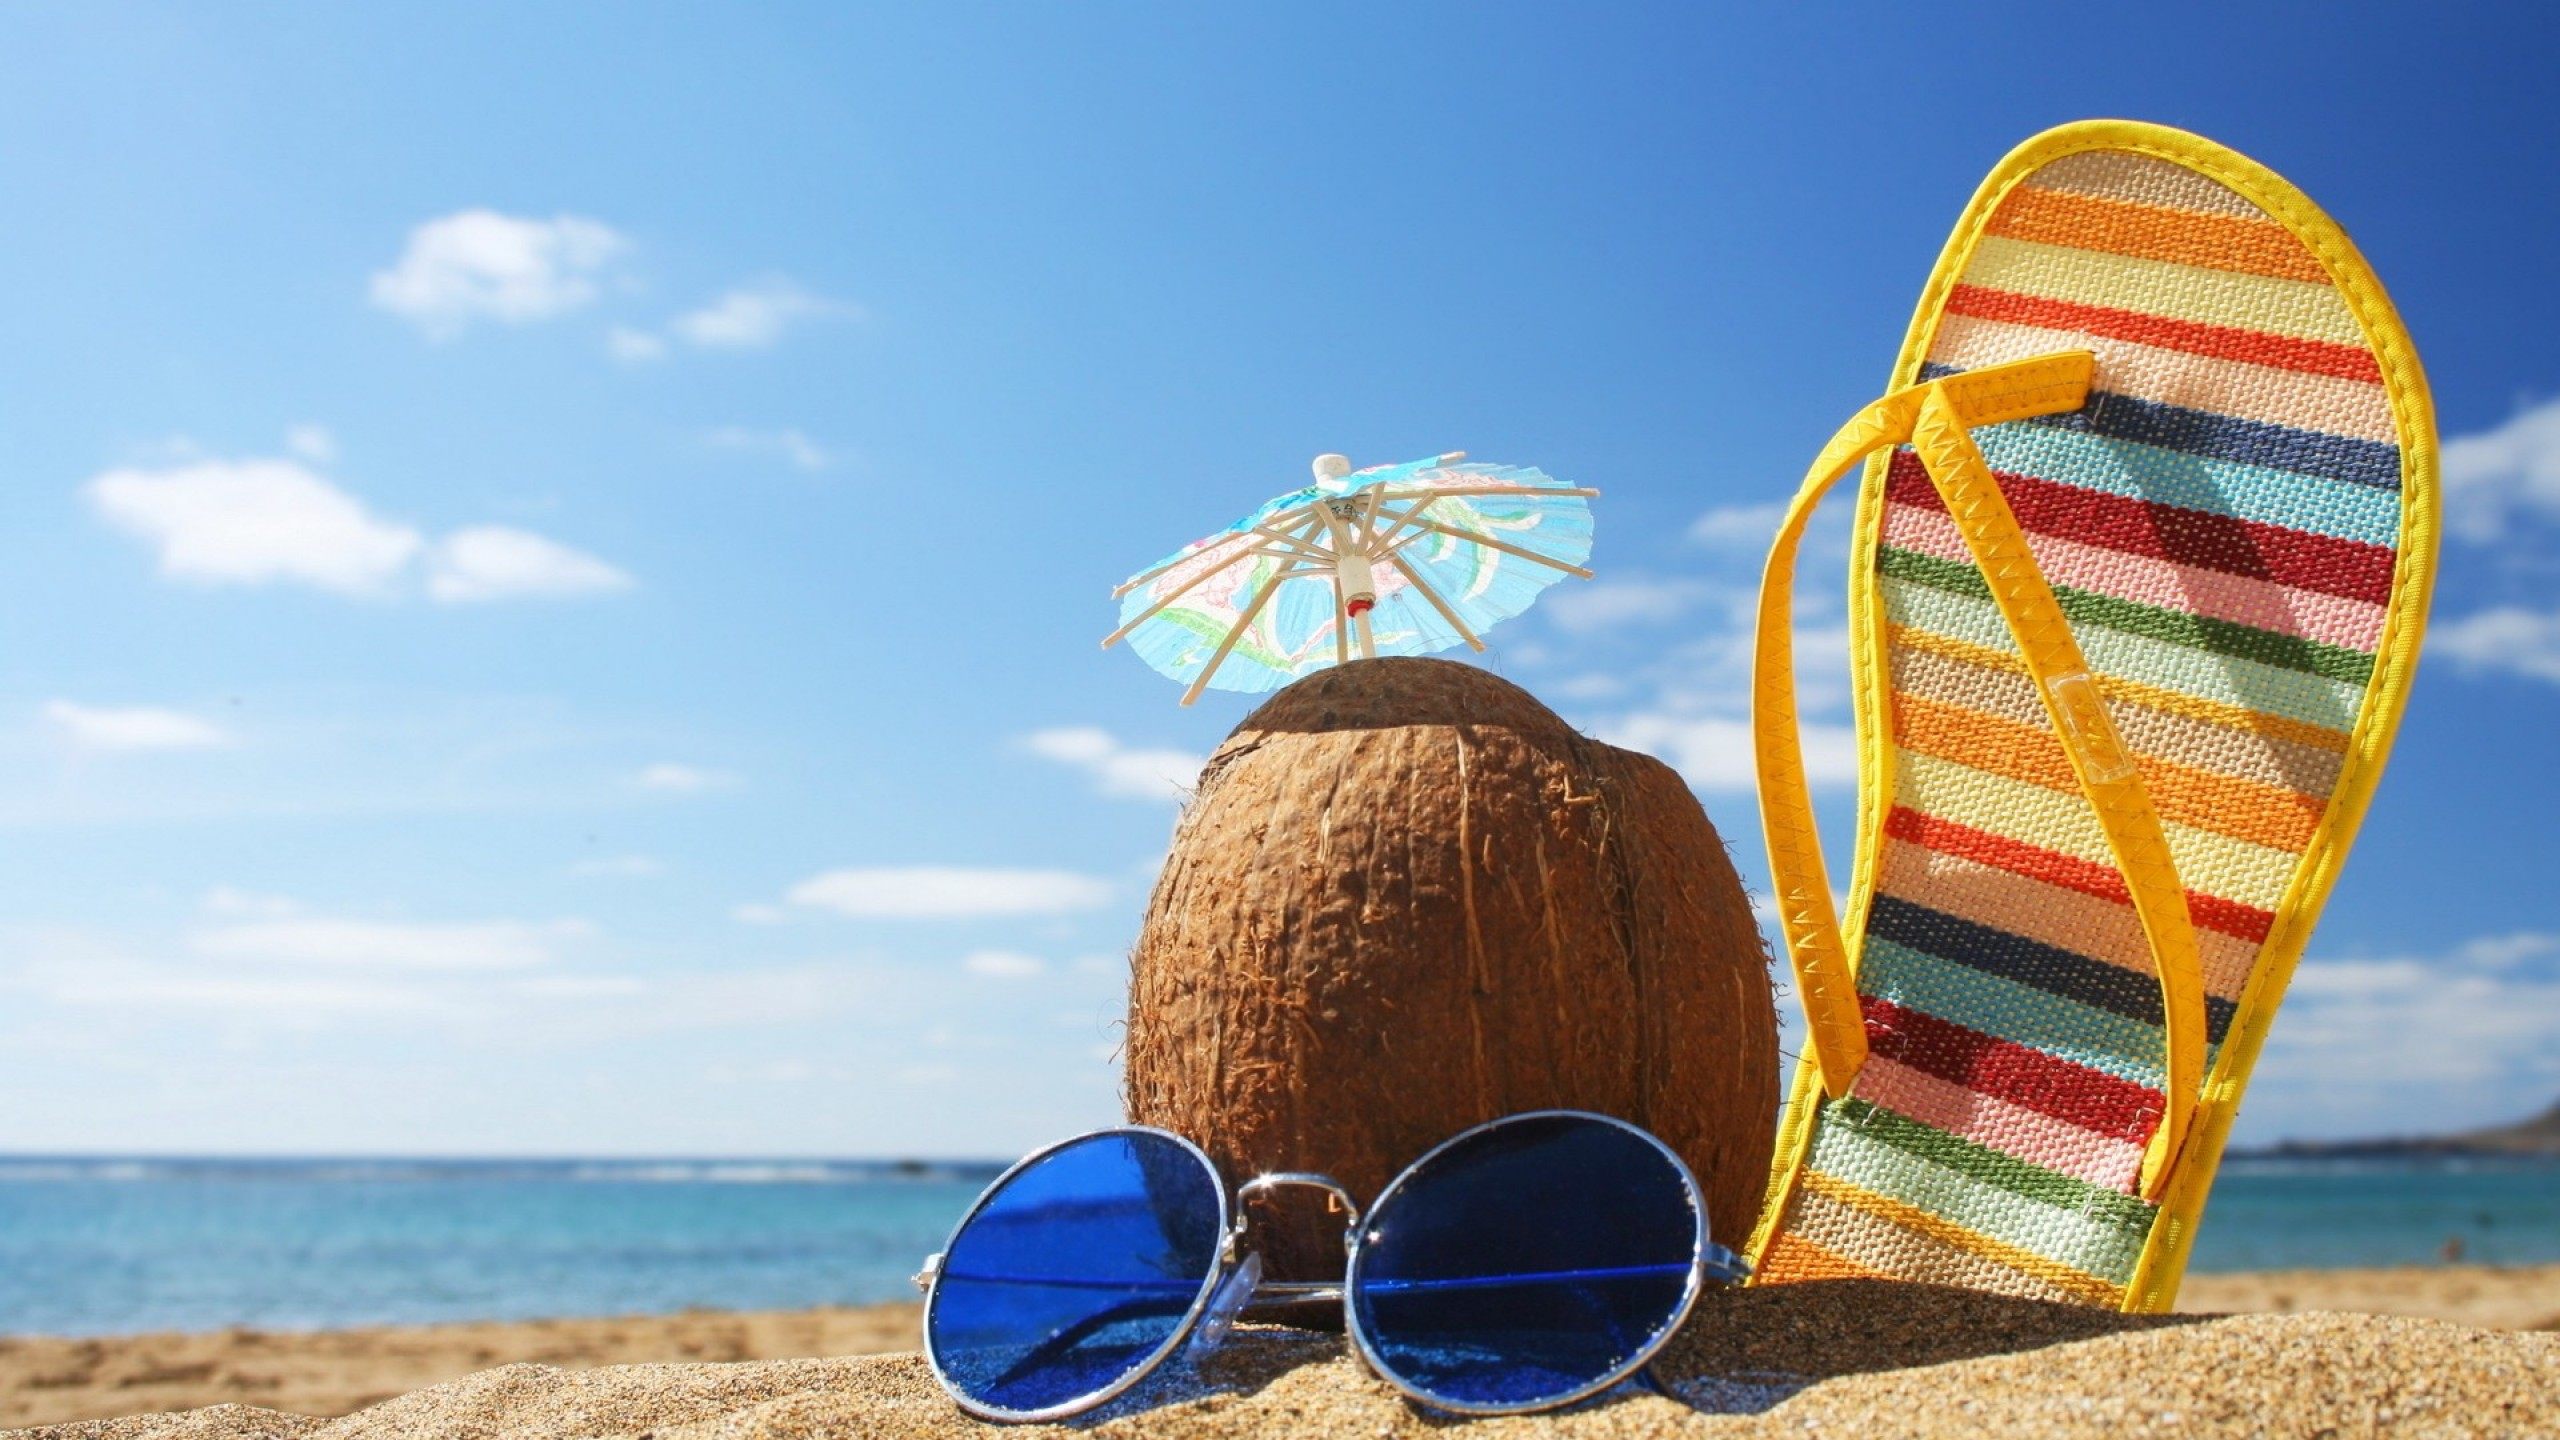 Summer Beach Fun Wallpaper Images amp Pictures   Becuo 2560x1440